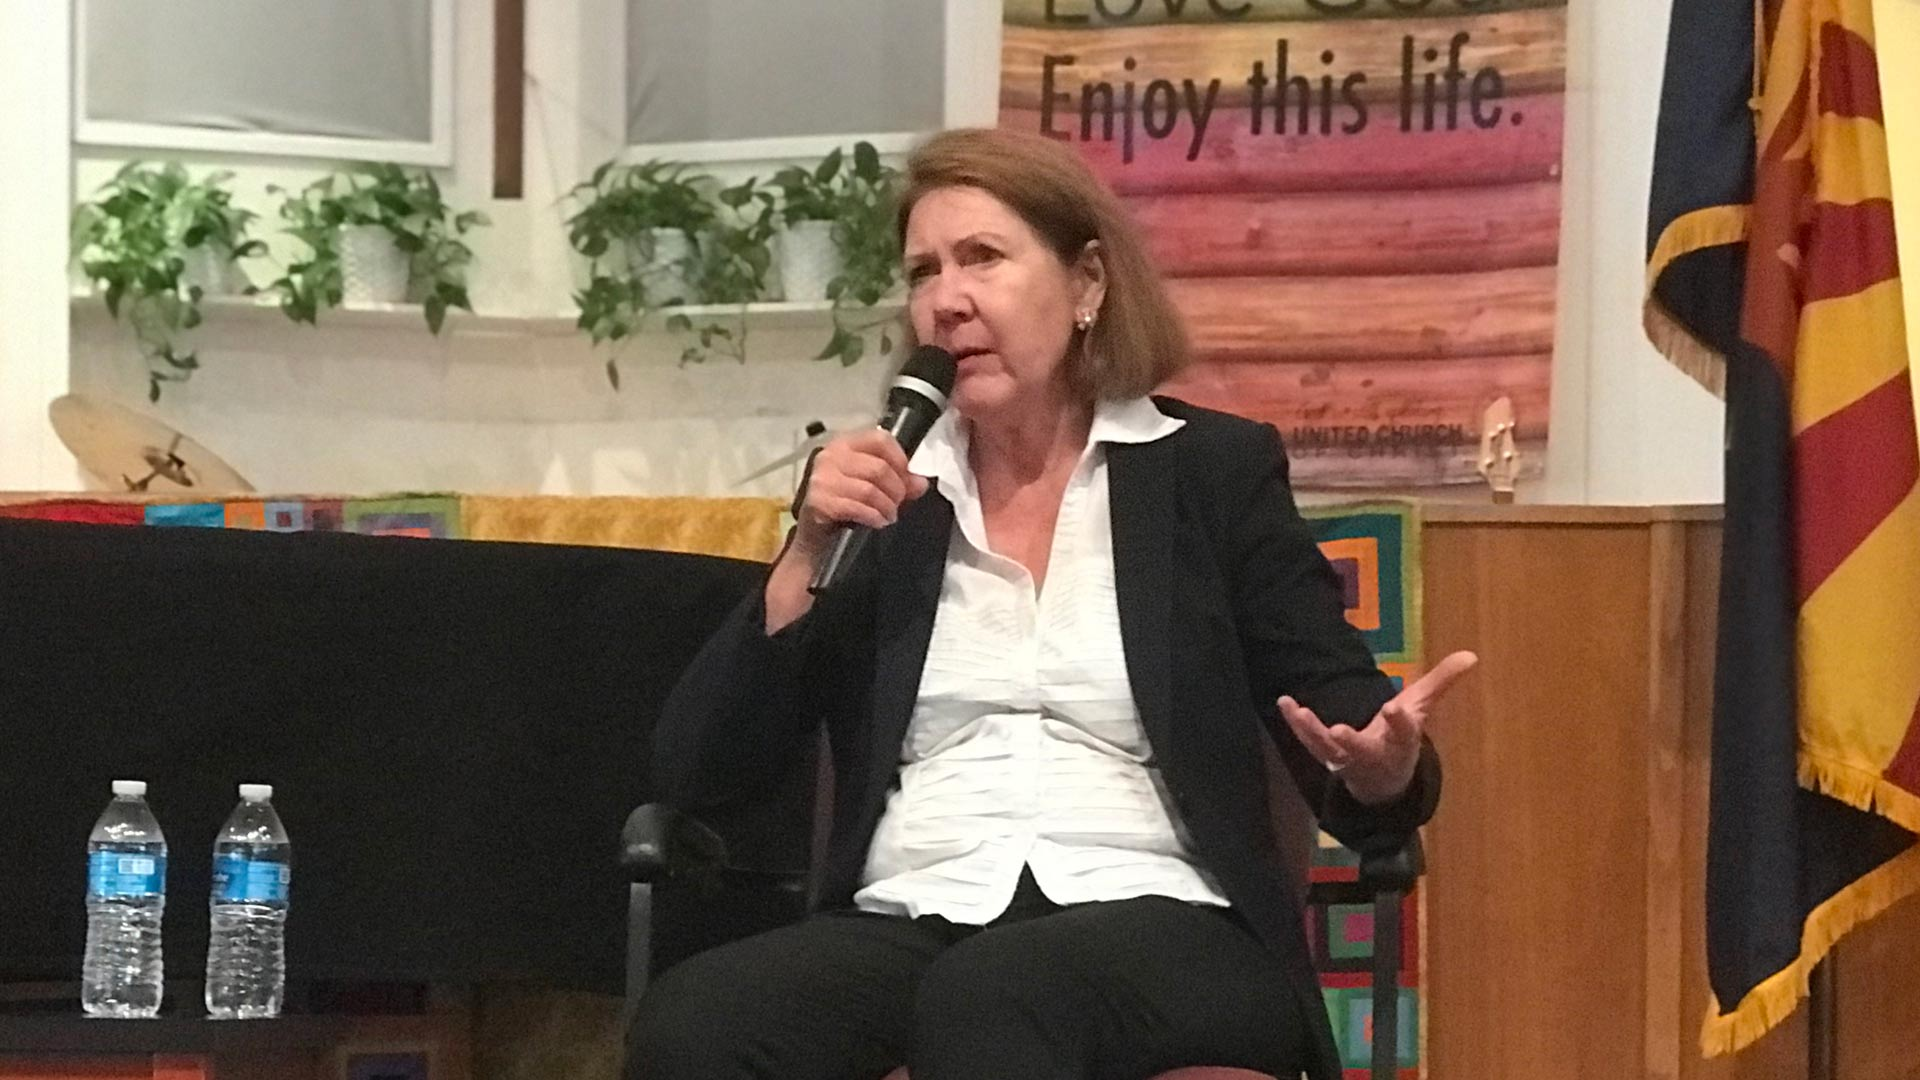 Congresswoman Ann Kirkpatrick takes question from her constituents at a town hall.  (May 29, 2019)